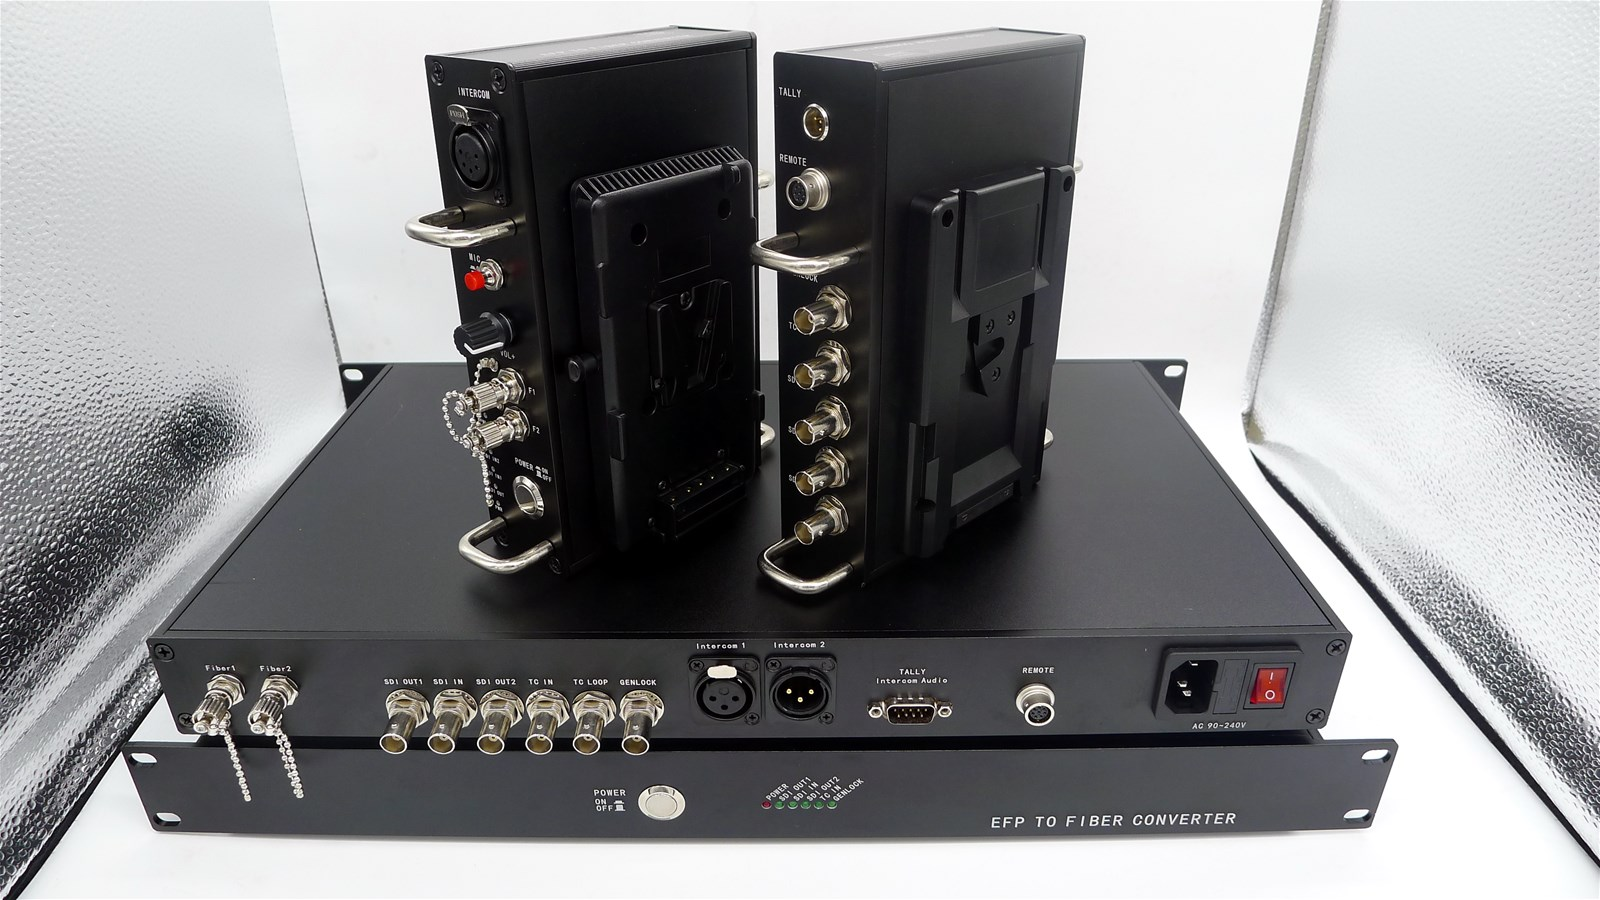 4K EFP camera over optic fiber system for Sony 4K SDI video Fiber transmission